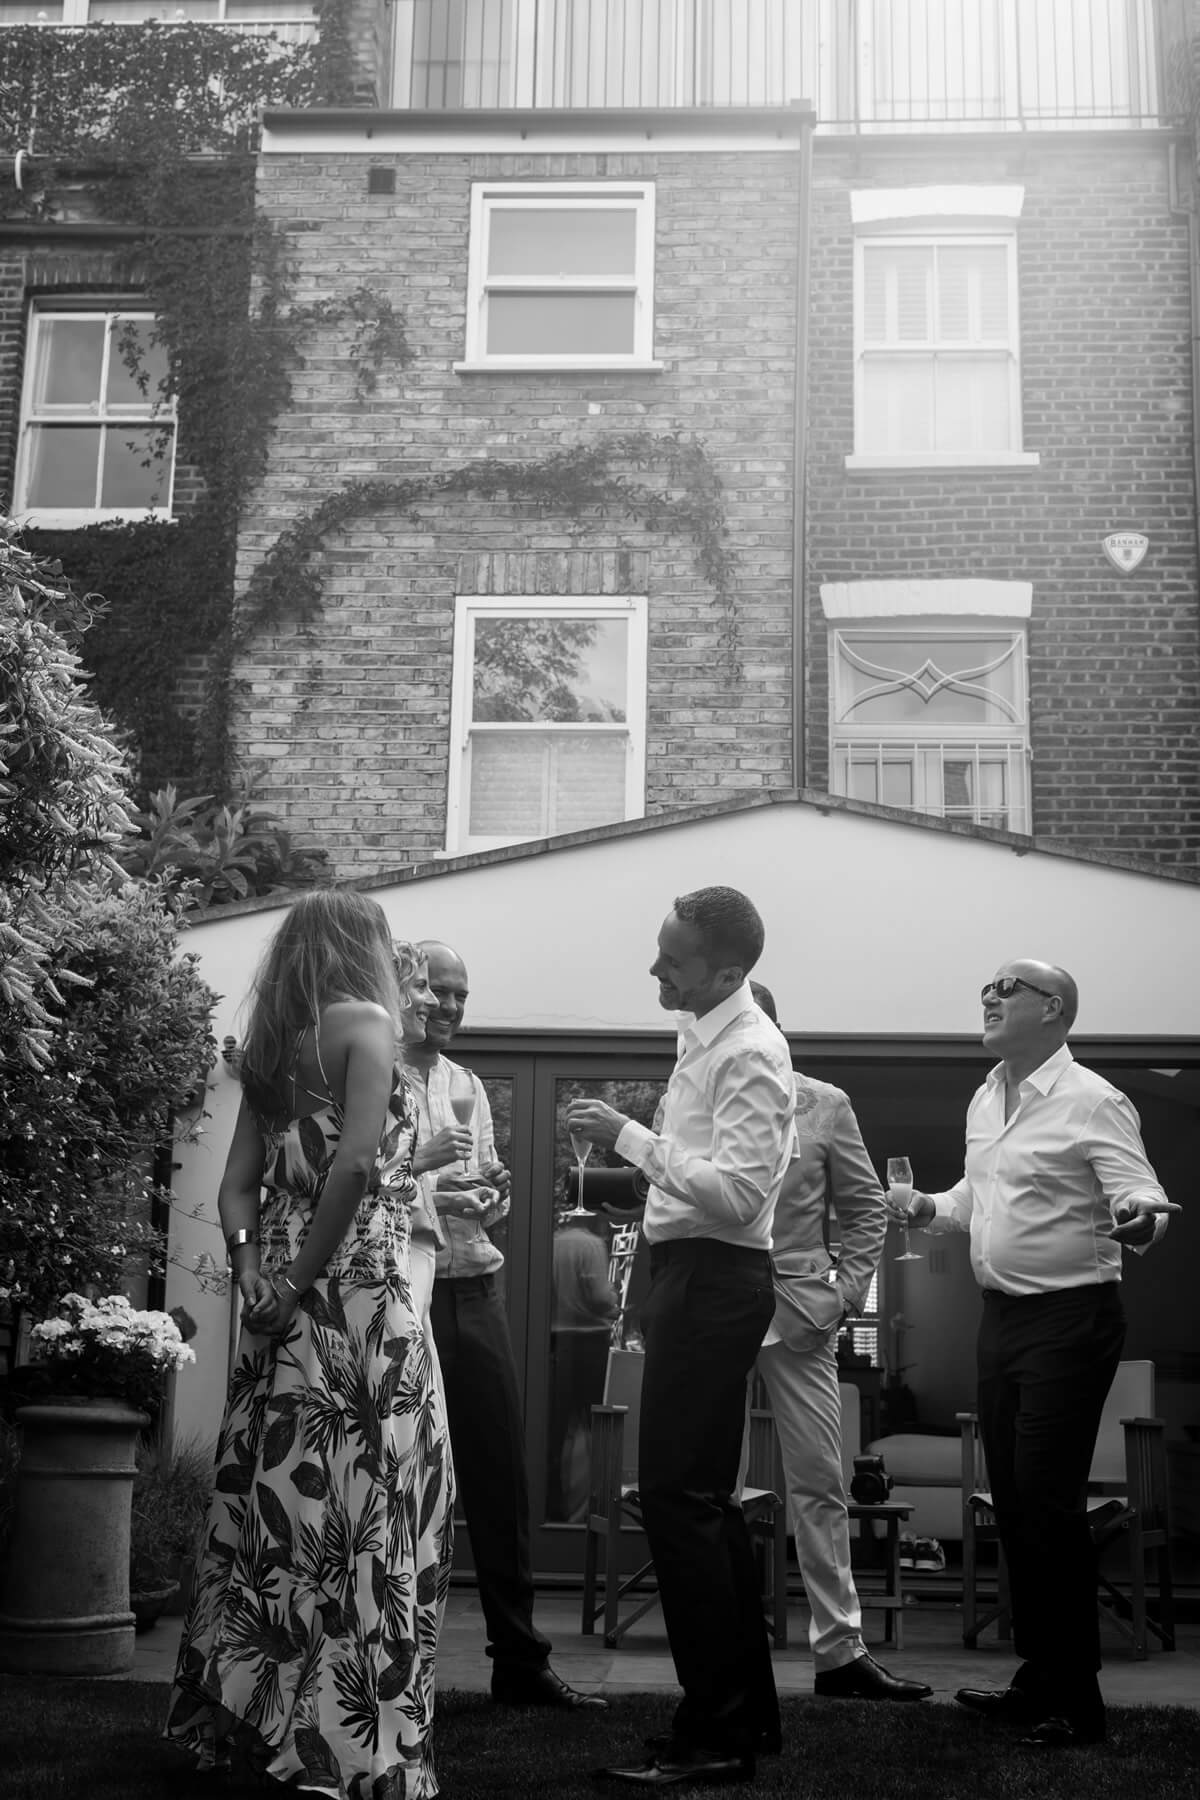 carine bea photography, documentary wedding photographer, documentary wedding photography, natural wedding photos, photojournalist, wedding reportage, same sex wedding, gay wedding photographer, gay wedding photography, chelsea gay wedding, london gay wedding, london gay wedding photographer, lgbt wedding packages, gay wedding ideas, lgbt photos, alternative wedding photographer